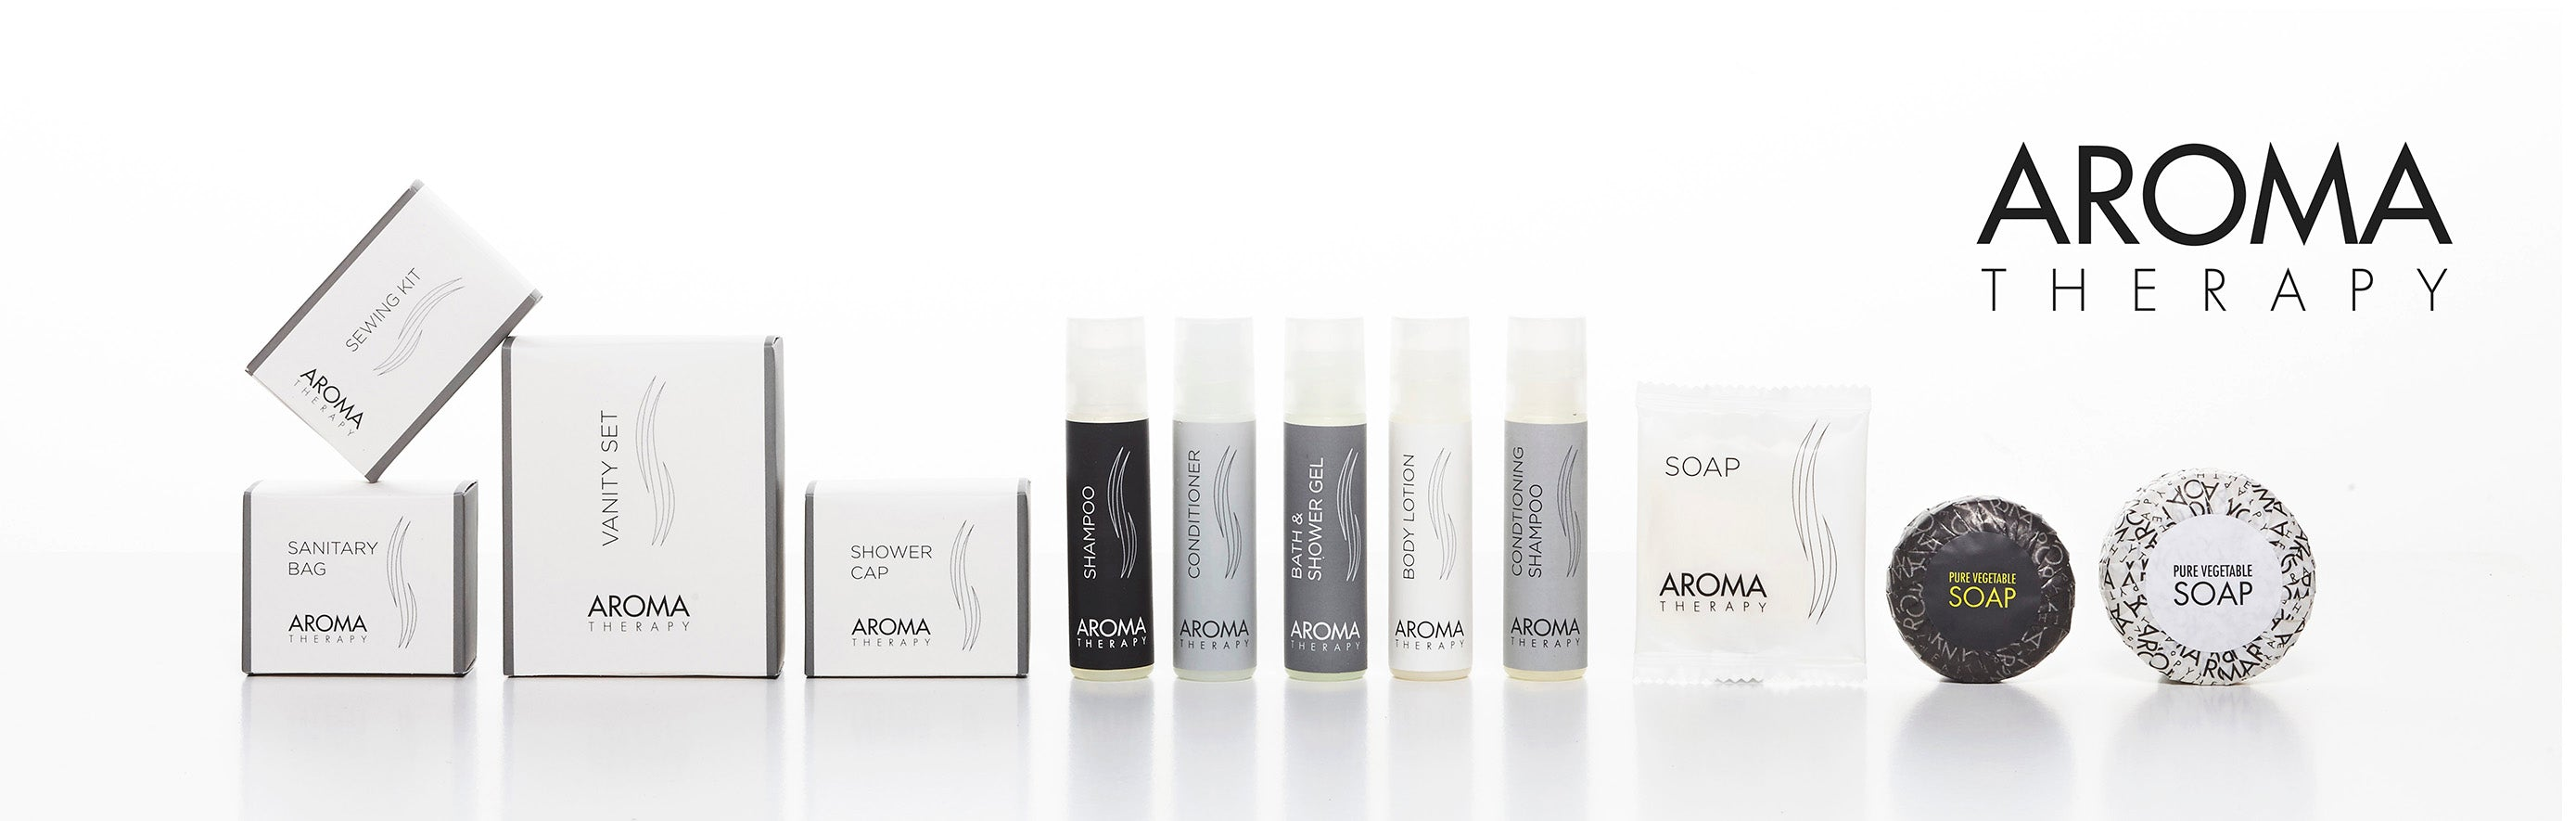 Aroma Therapy - Guest Amenities & Hospitality Supplies | Hotel Soap ...